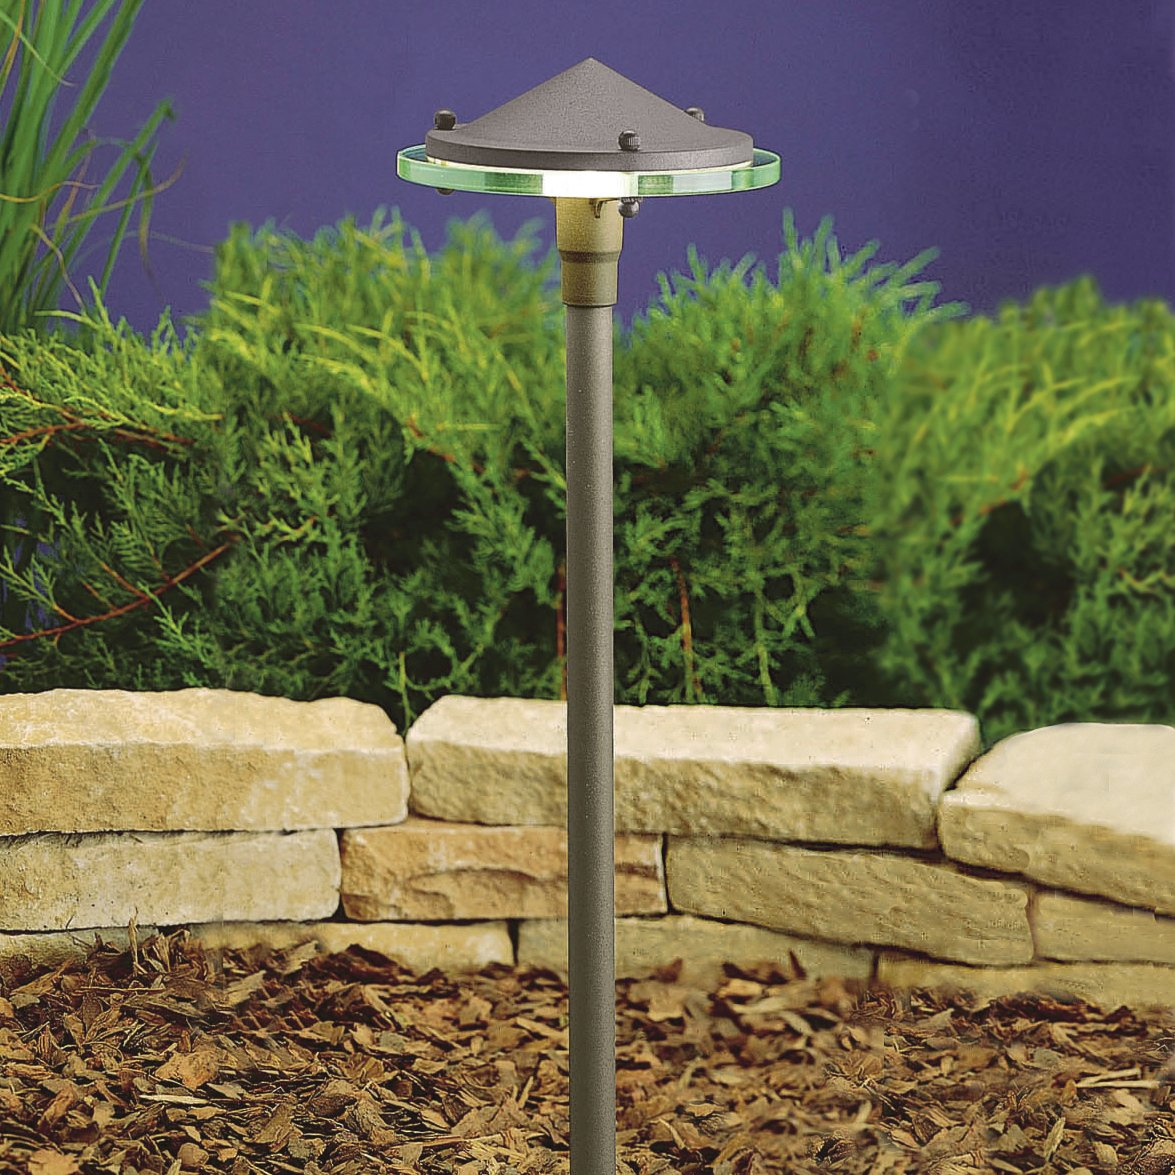 Kichler Lighting 15817AZT Landscape Brass LED Path Light with Clear Glass Diffuser, Textured Architectural Bronze